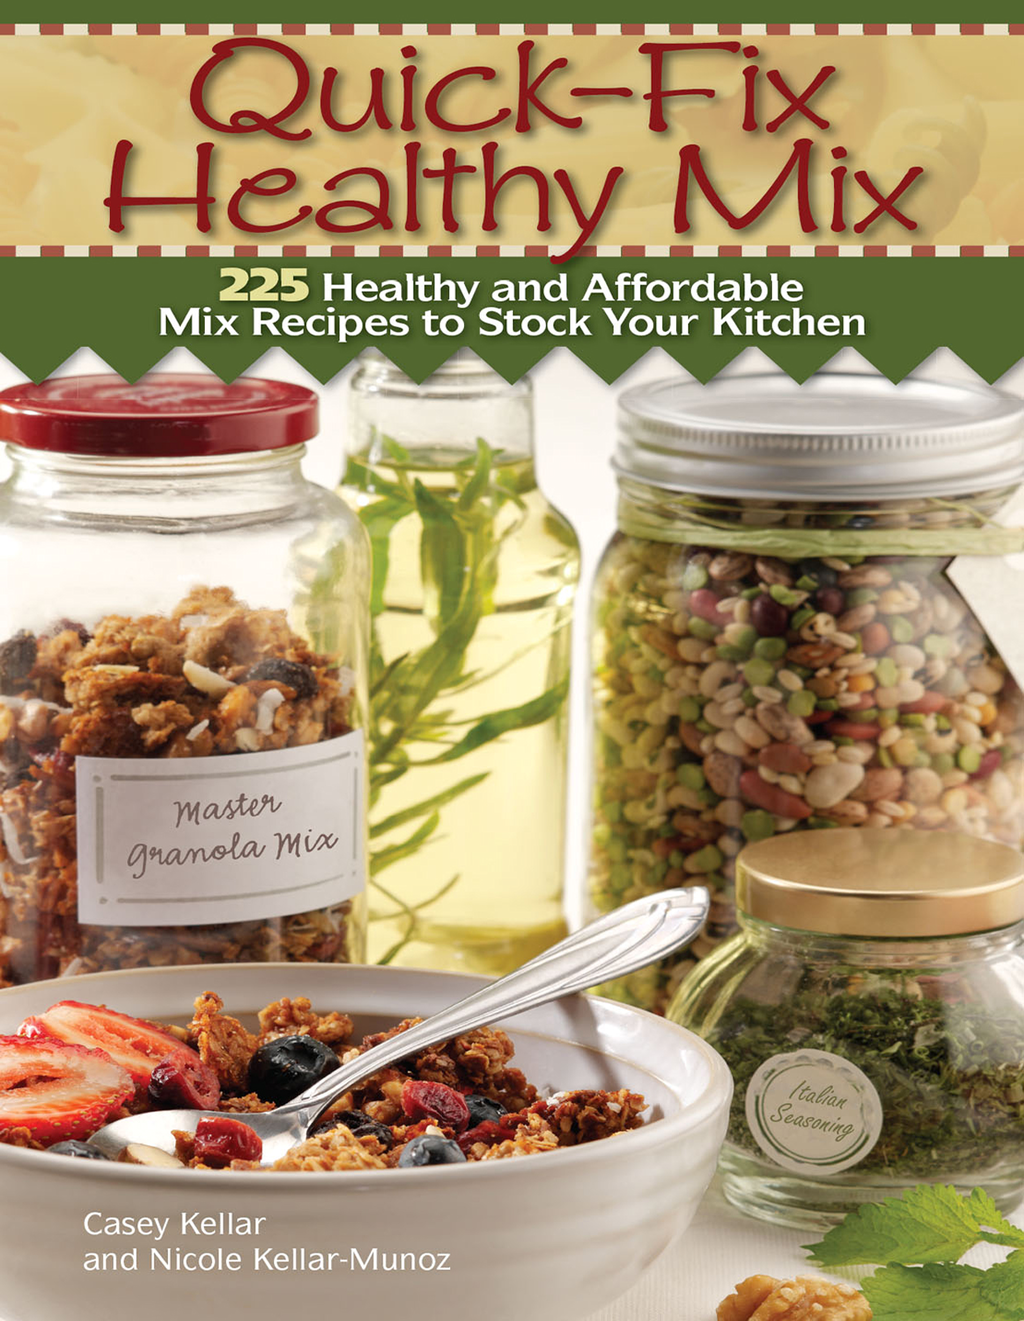 Quick Fix Healthy Mix 225 healthy and affordable mix recipes to stock your kitchen